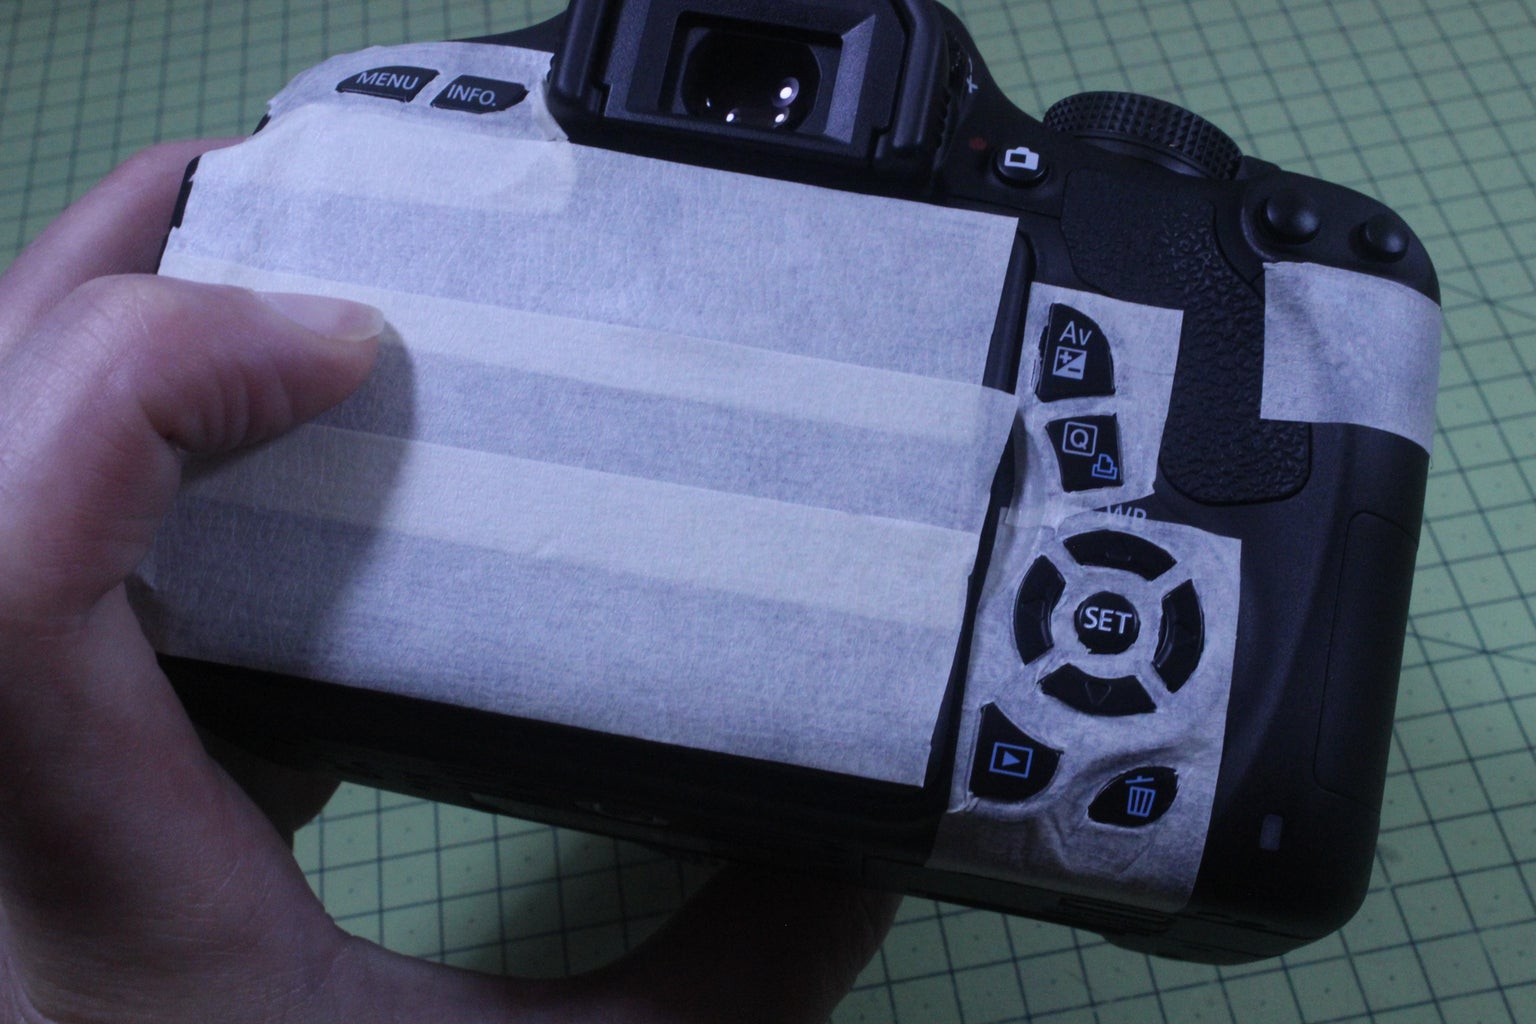 Masking-Out [Optional, But a Good Skill to Learn]